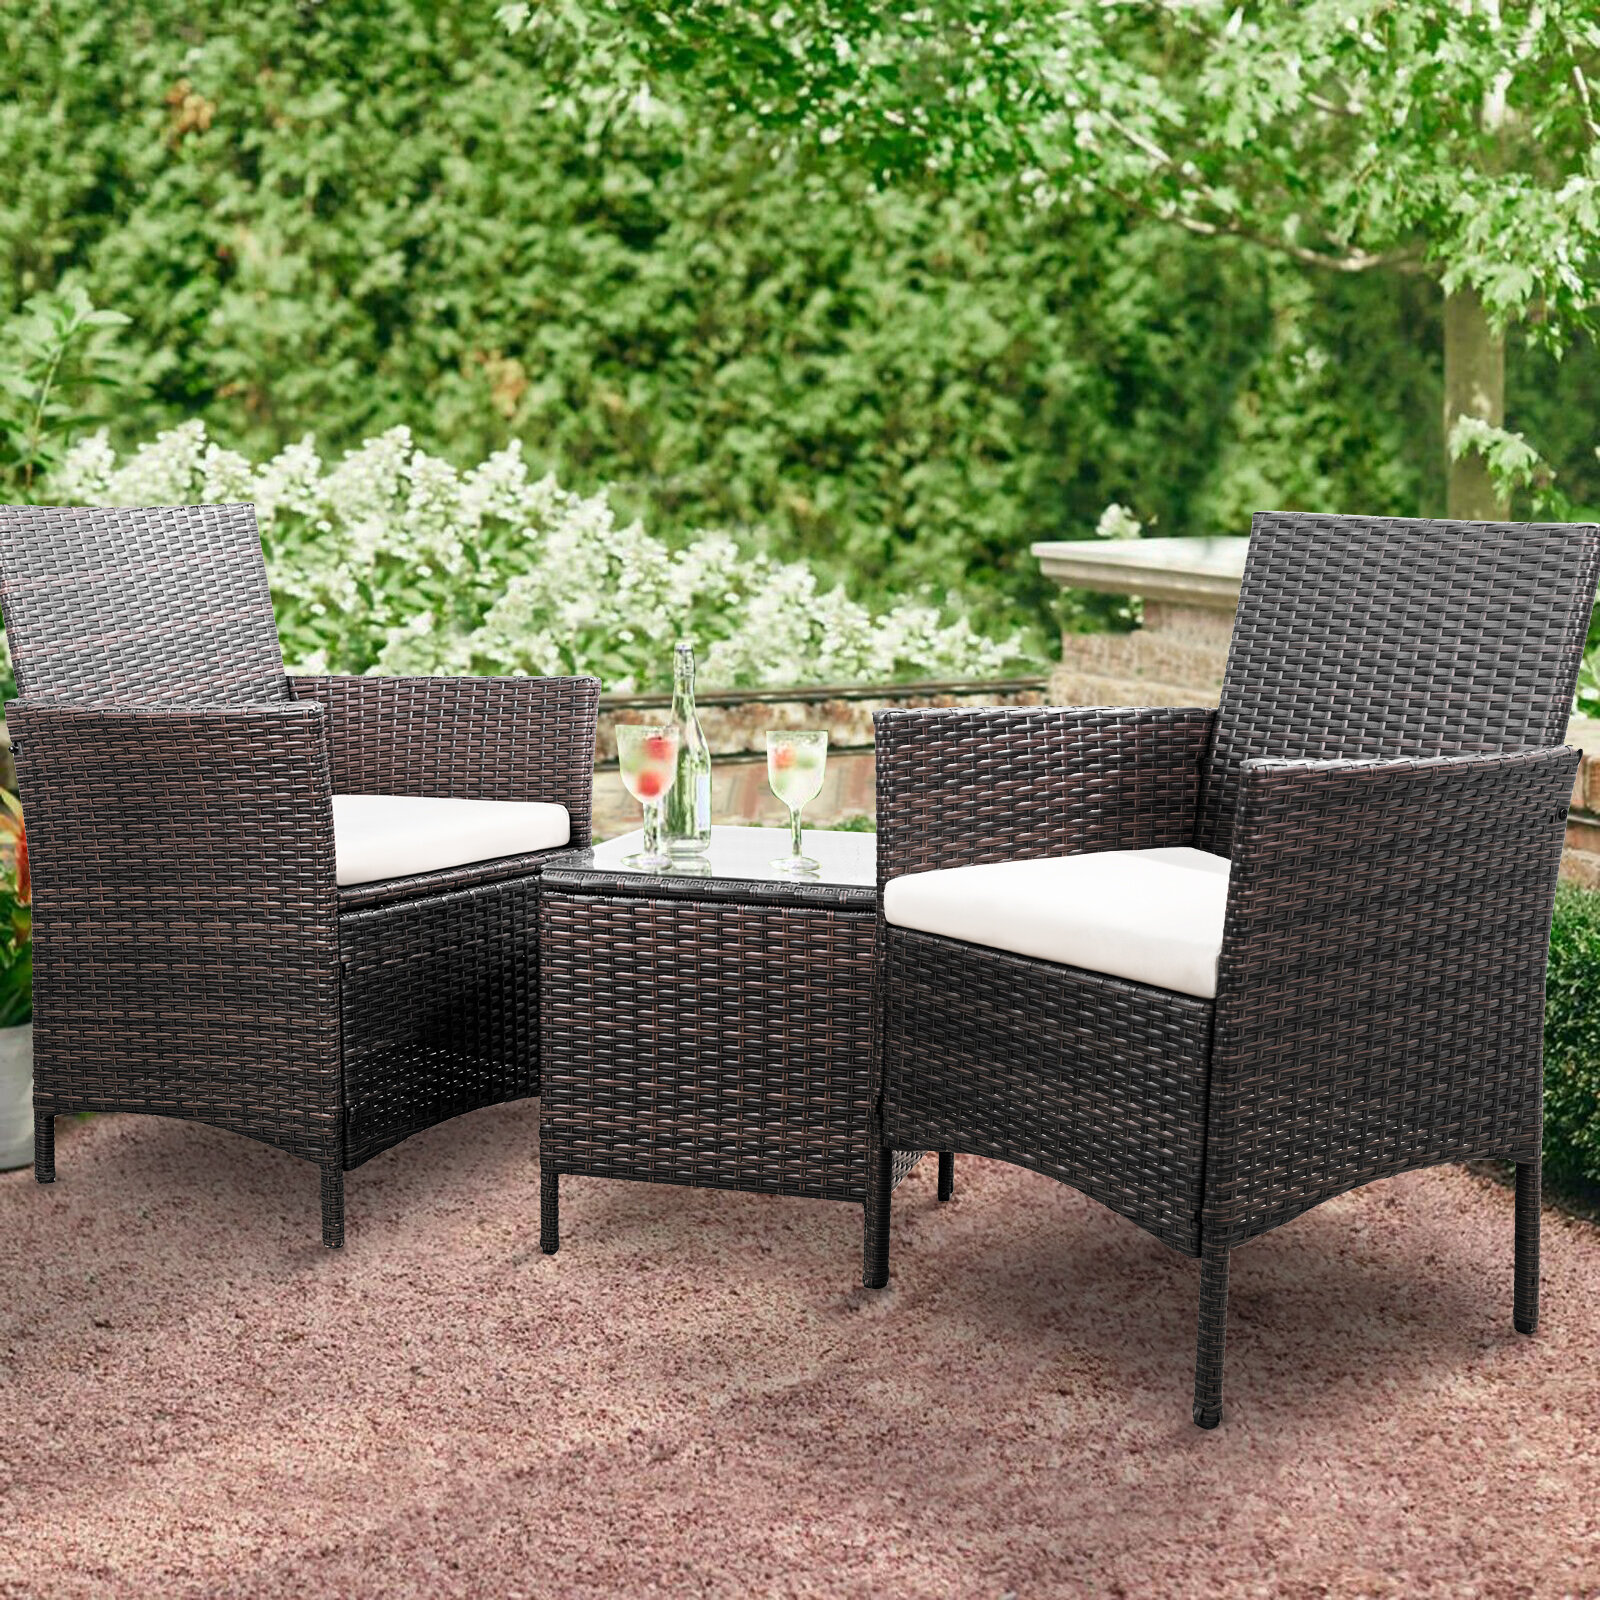 Brayden Studio Jagger 3 Piece Rattan 2 Person Seating Group with